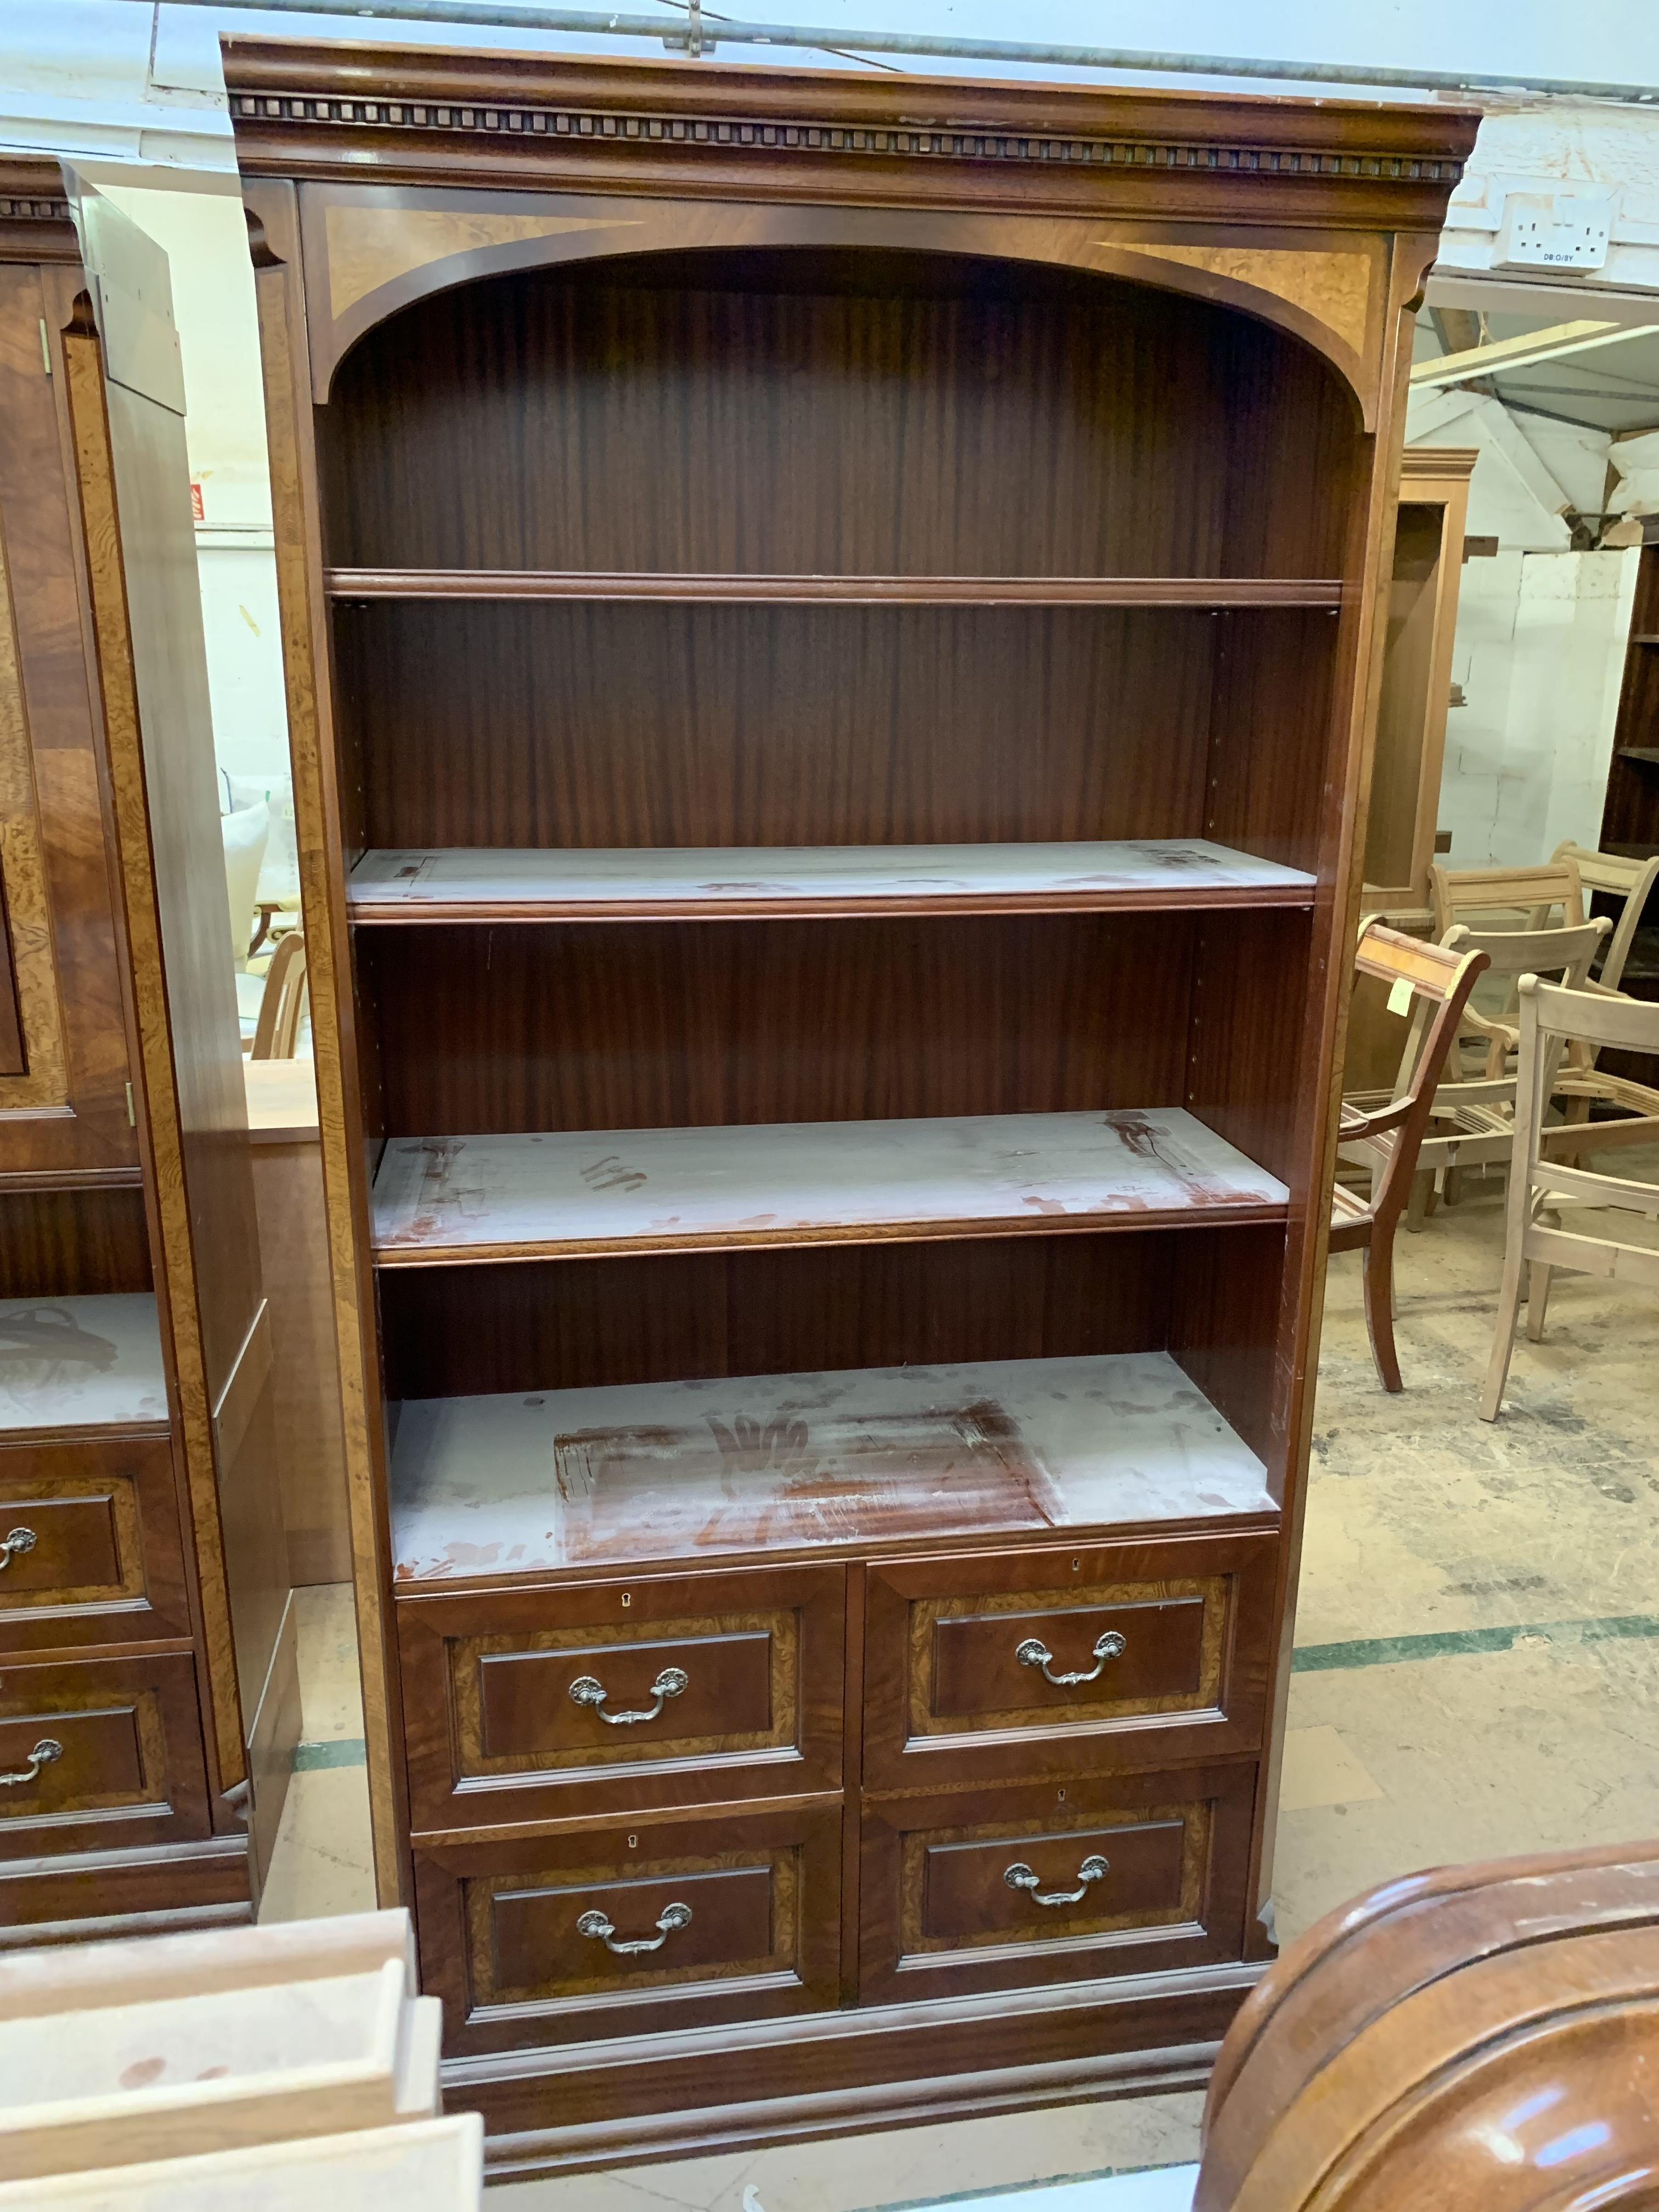 Lot 25 - Modular wall filing Units (3-part), comprising central shelved unit flanked by drawer units.